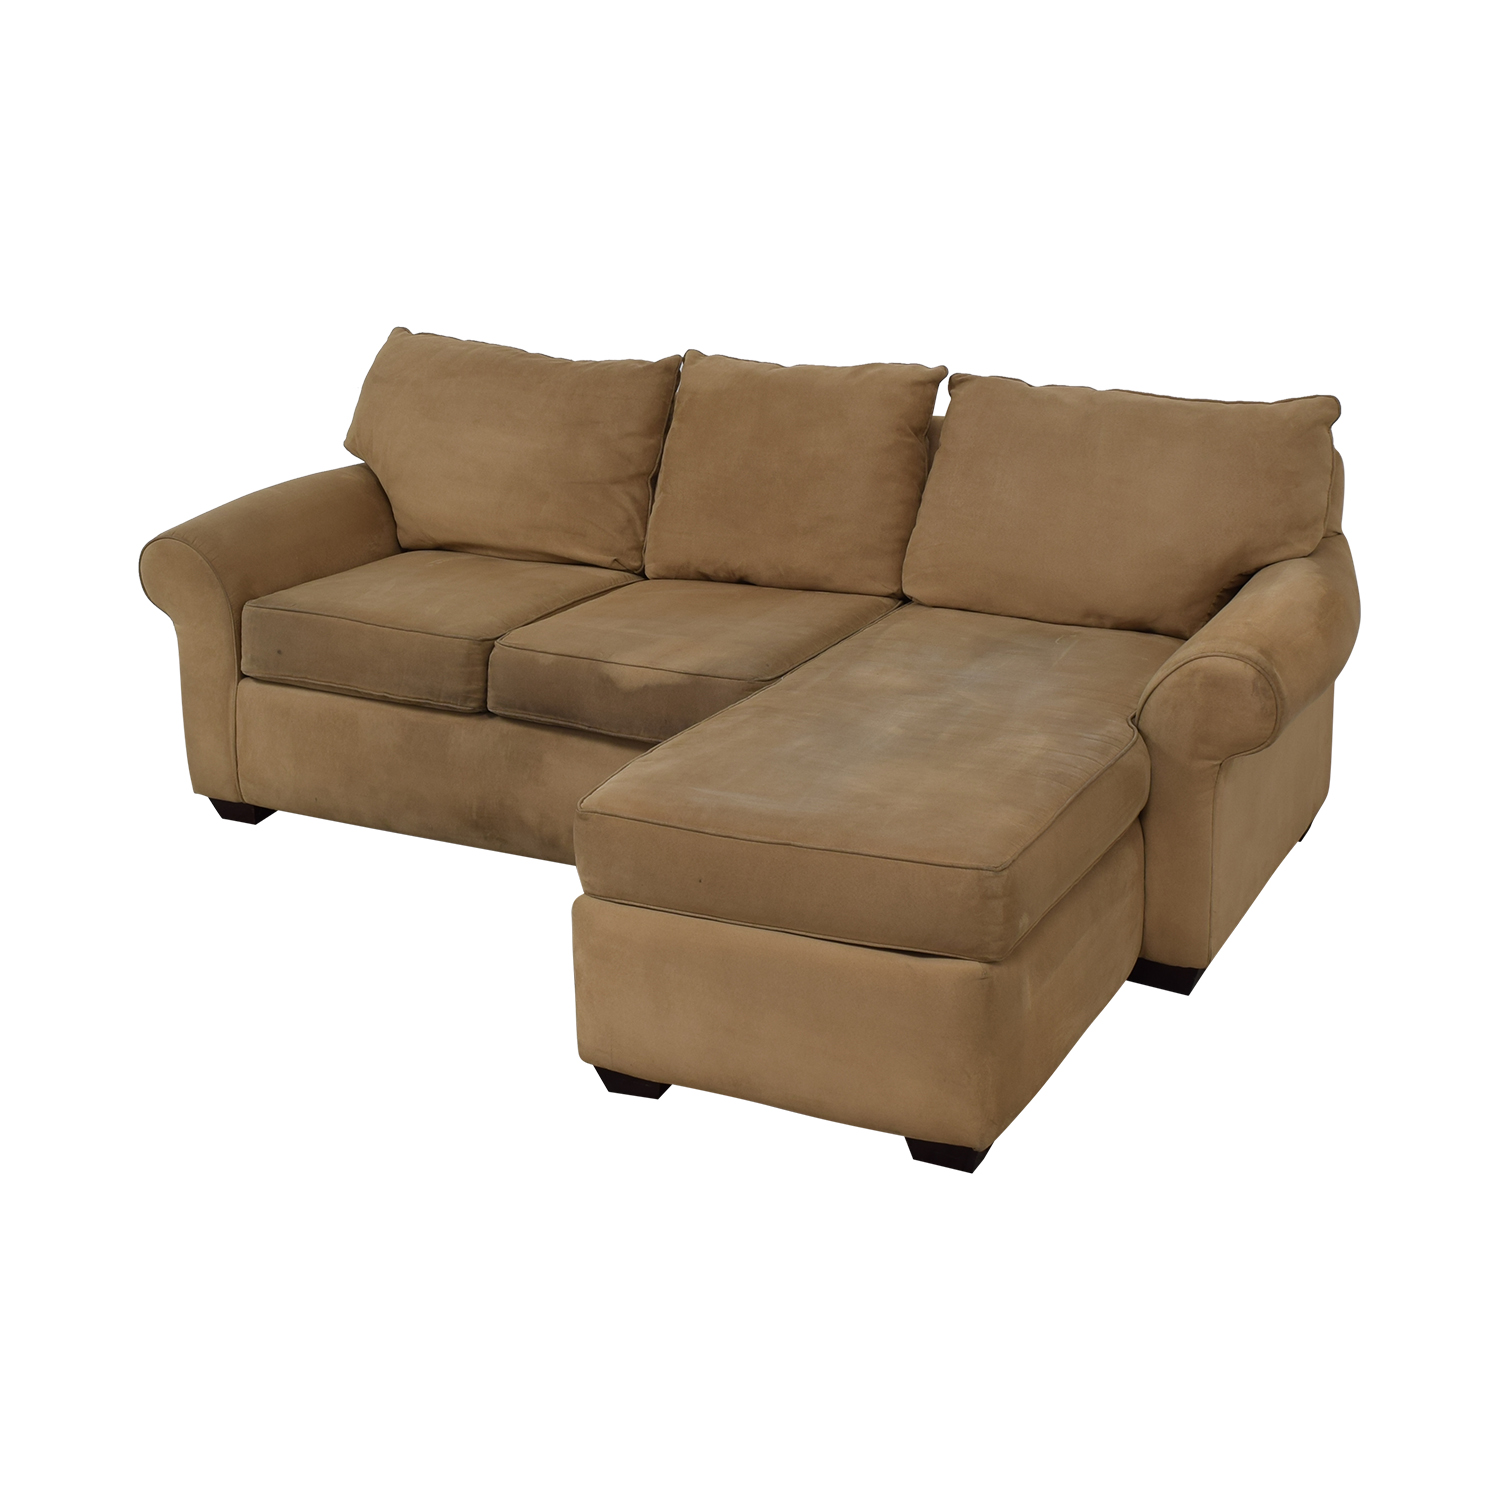 Sectional Right Side Chaise Sofa / Sofas